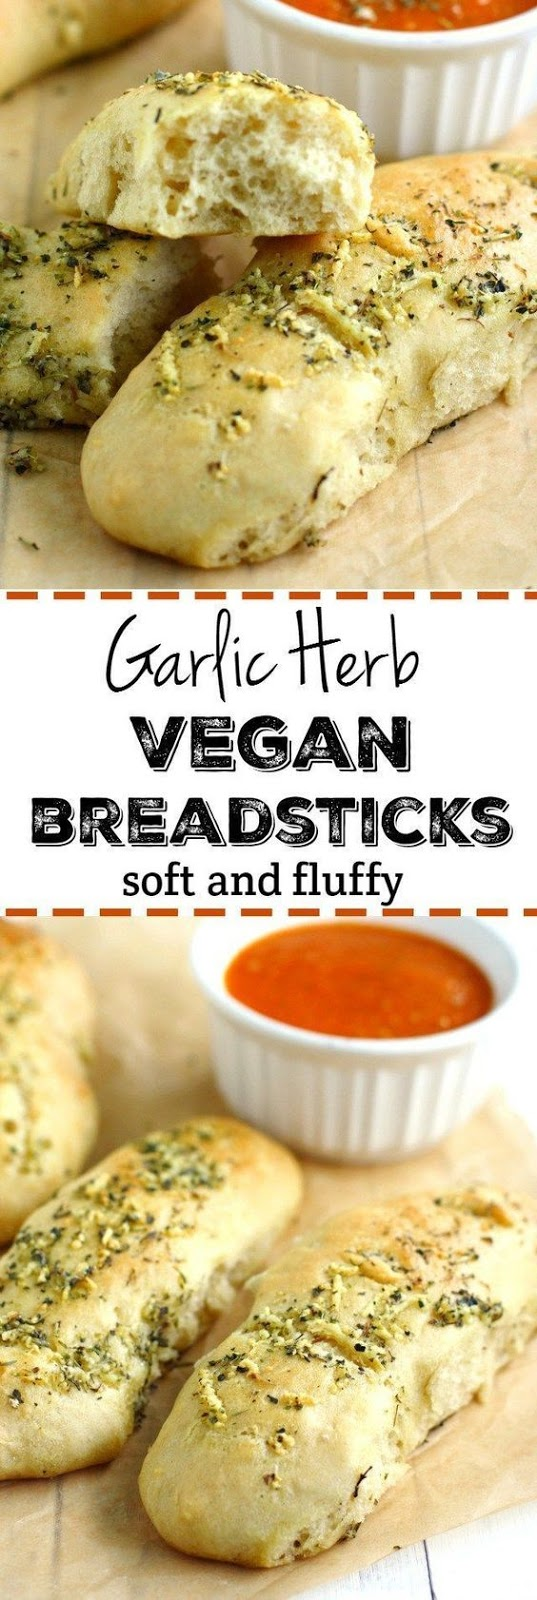 Vegan Garlic Herb Breadsticks